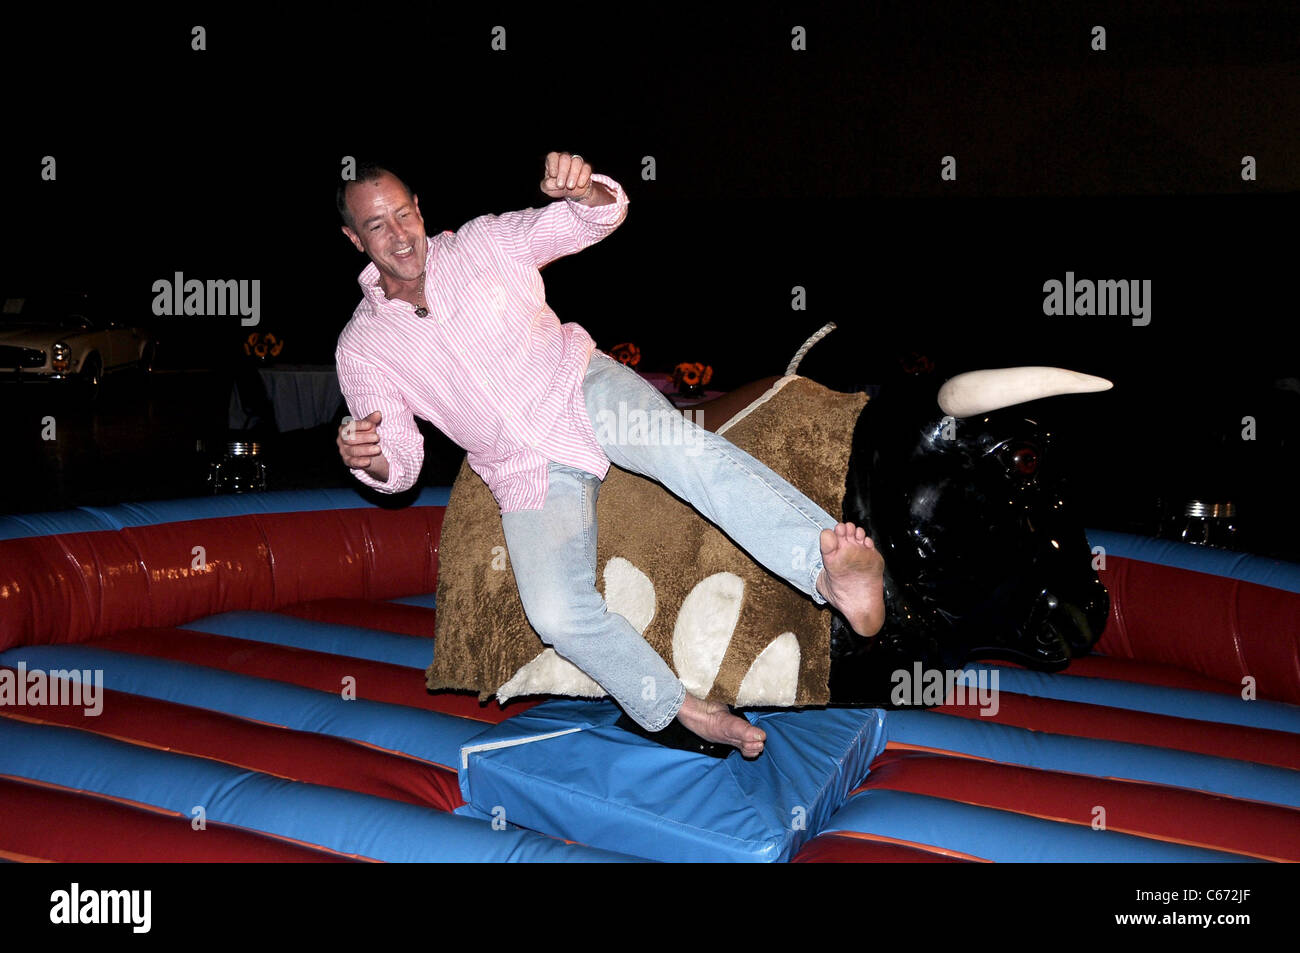 EXCLUSIVE!!! Michael Lohan, riding mechanical bull in attendance for Models Hotel Carnival Benefiting Fashion Delivers, - Stock Image